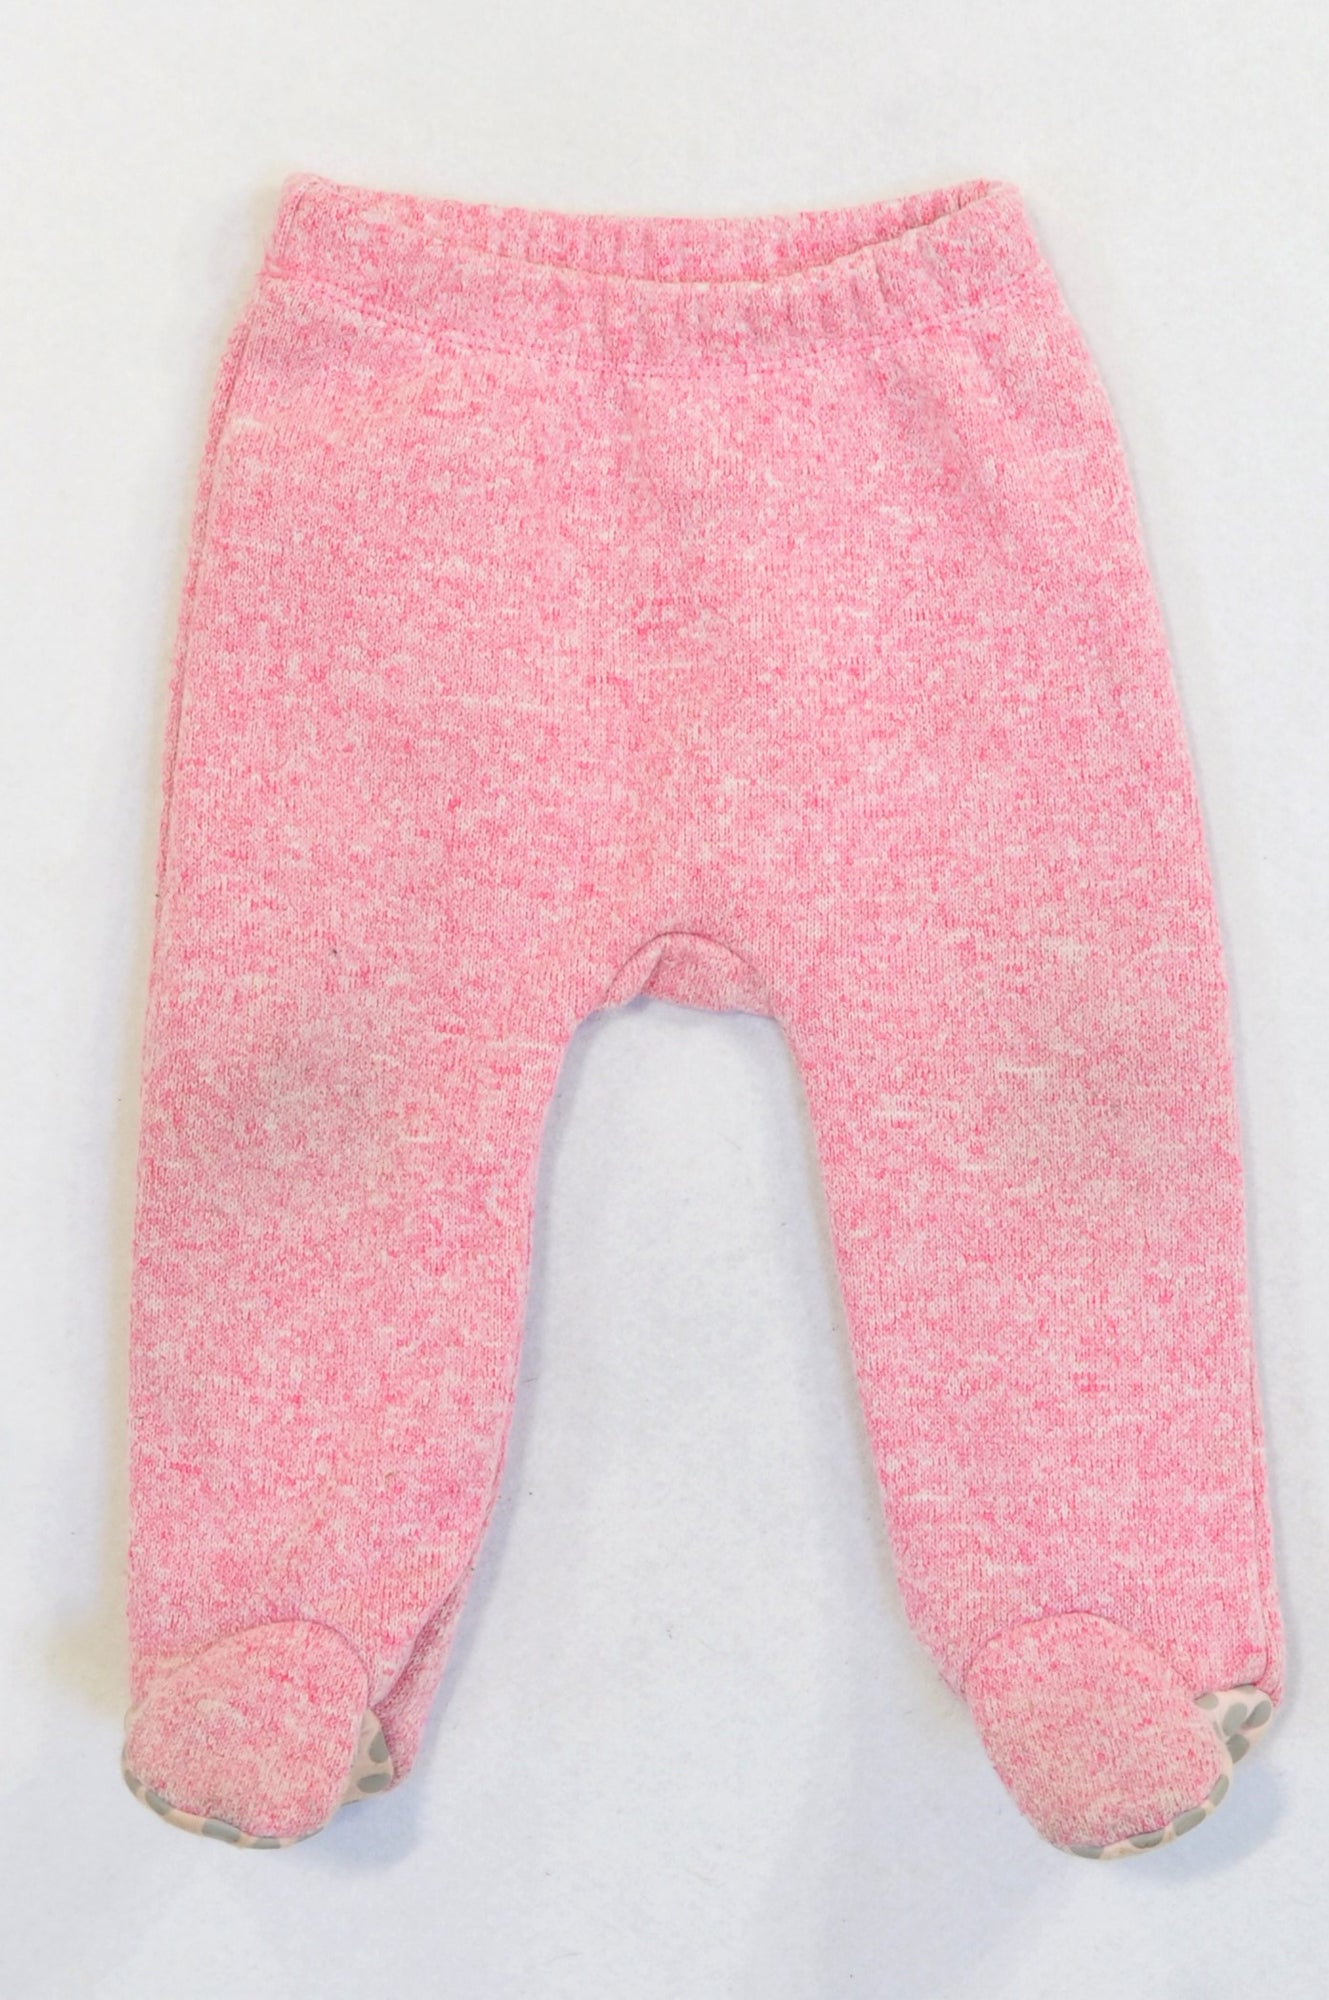 Woolworths Speckled Pink Knit Fleece Inner Footed Pants Girls 6-12 months